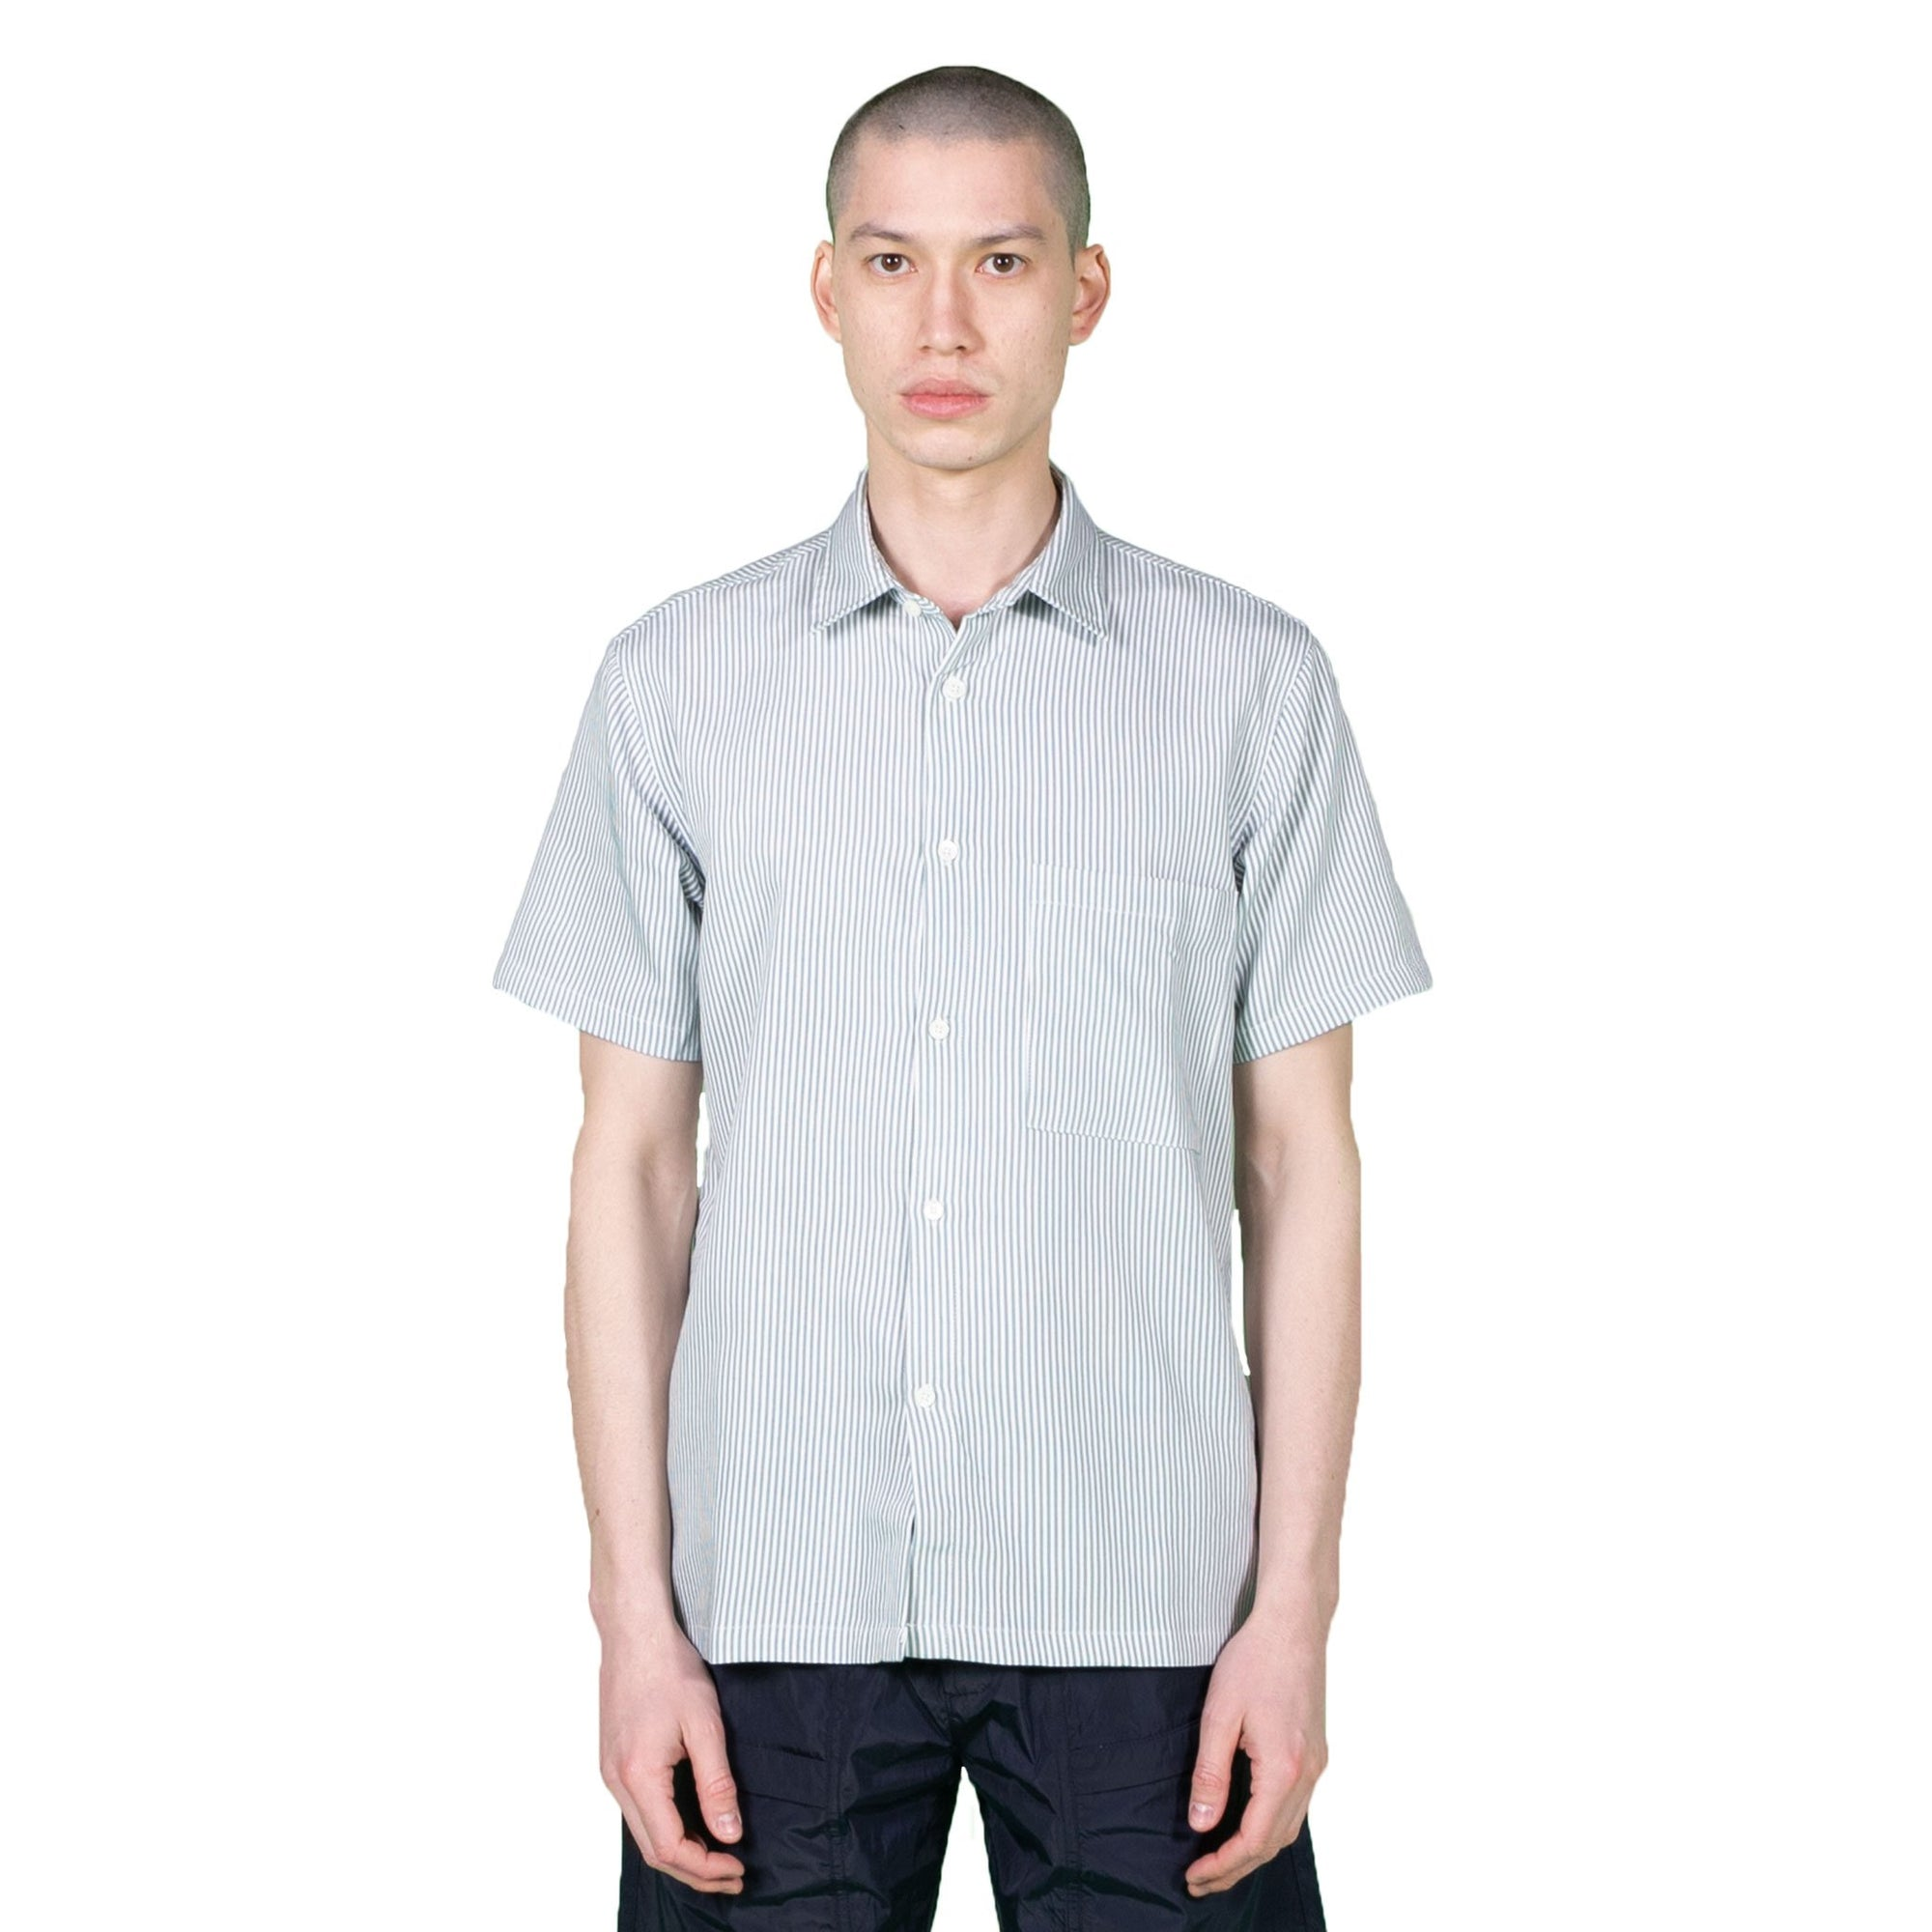 Native North Striped Bureau Shirt in Blue